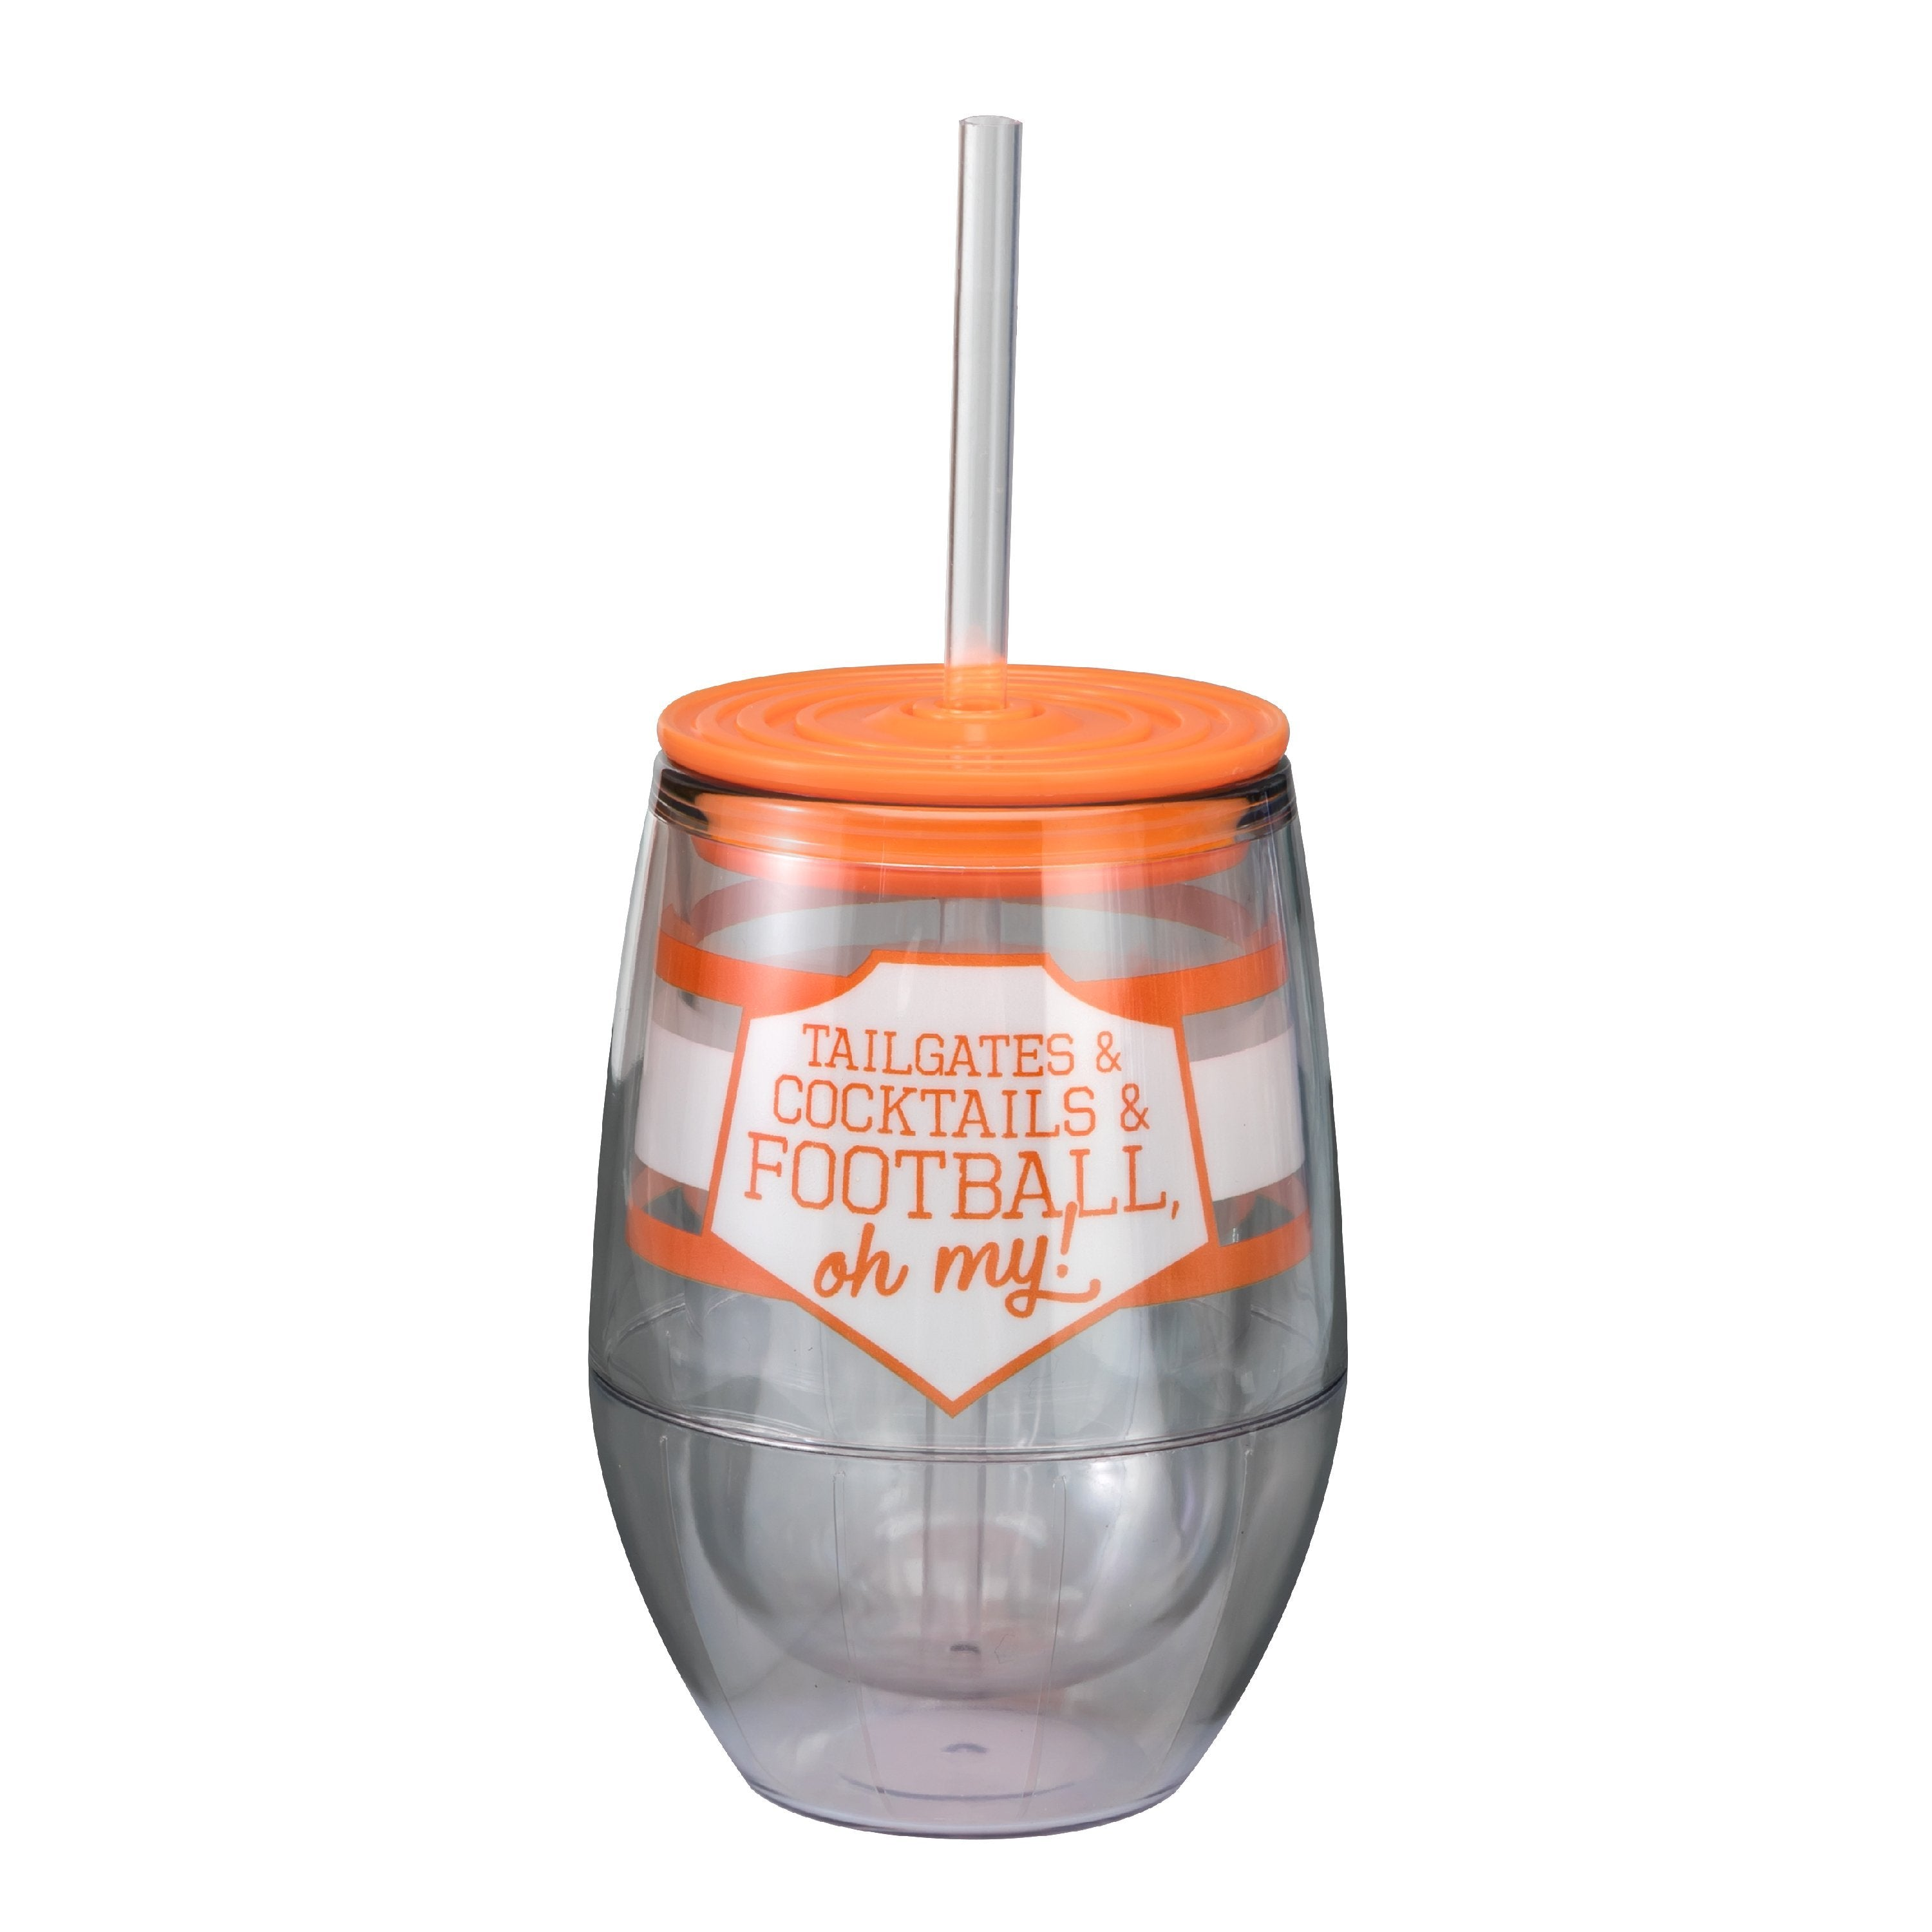 "Orange/White 12oz Acrylic Stemless Wine Cup - ""Tailgates & Cocktails & Football, Oh My!"""